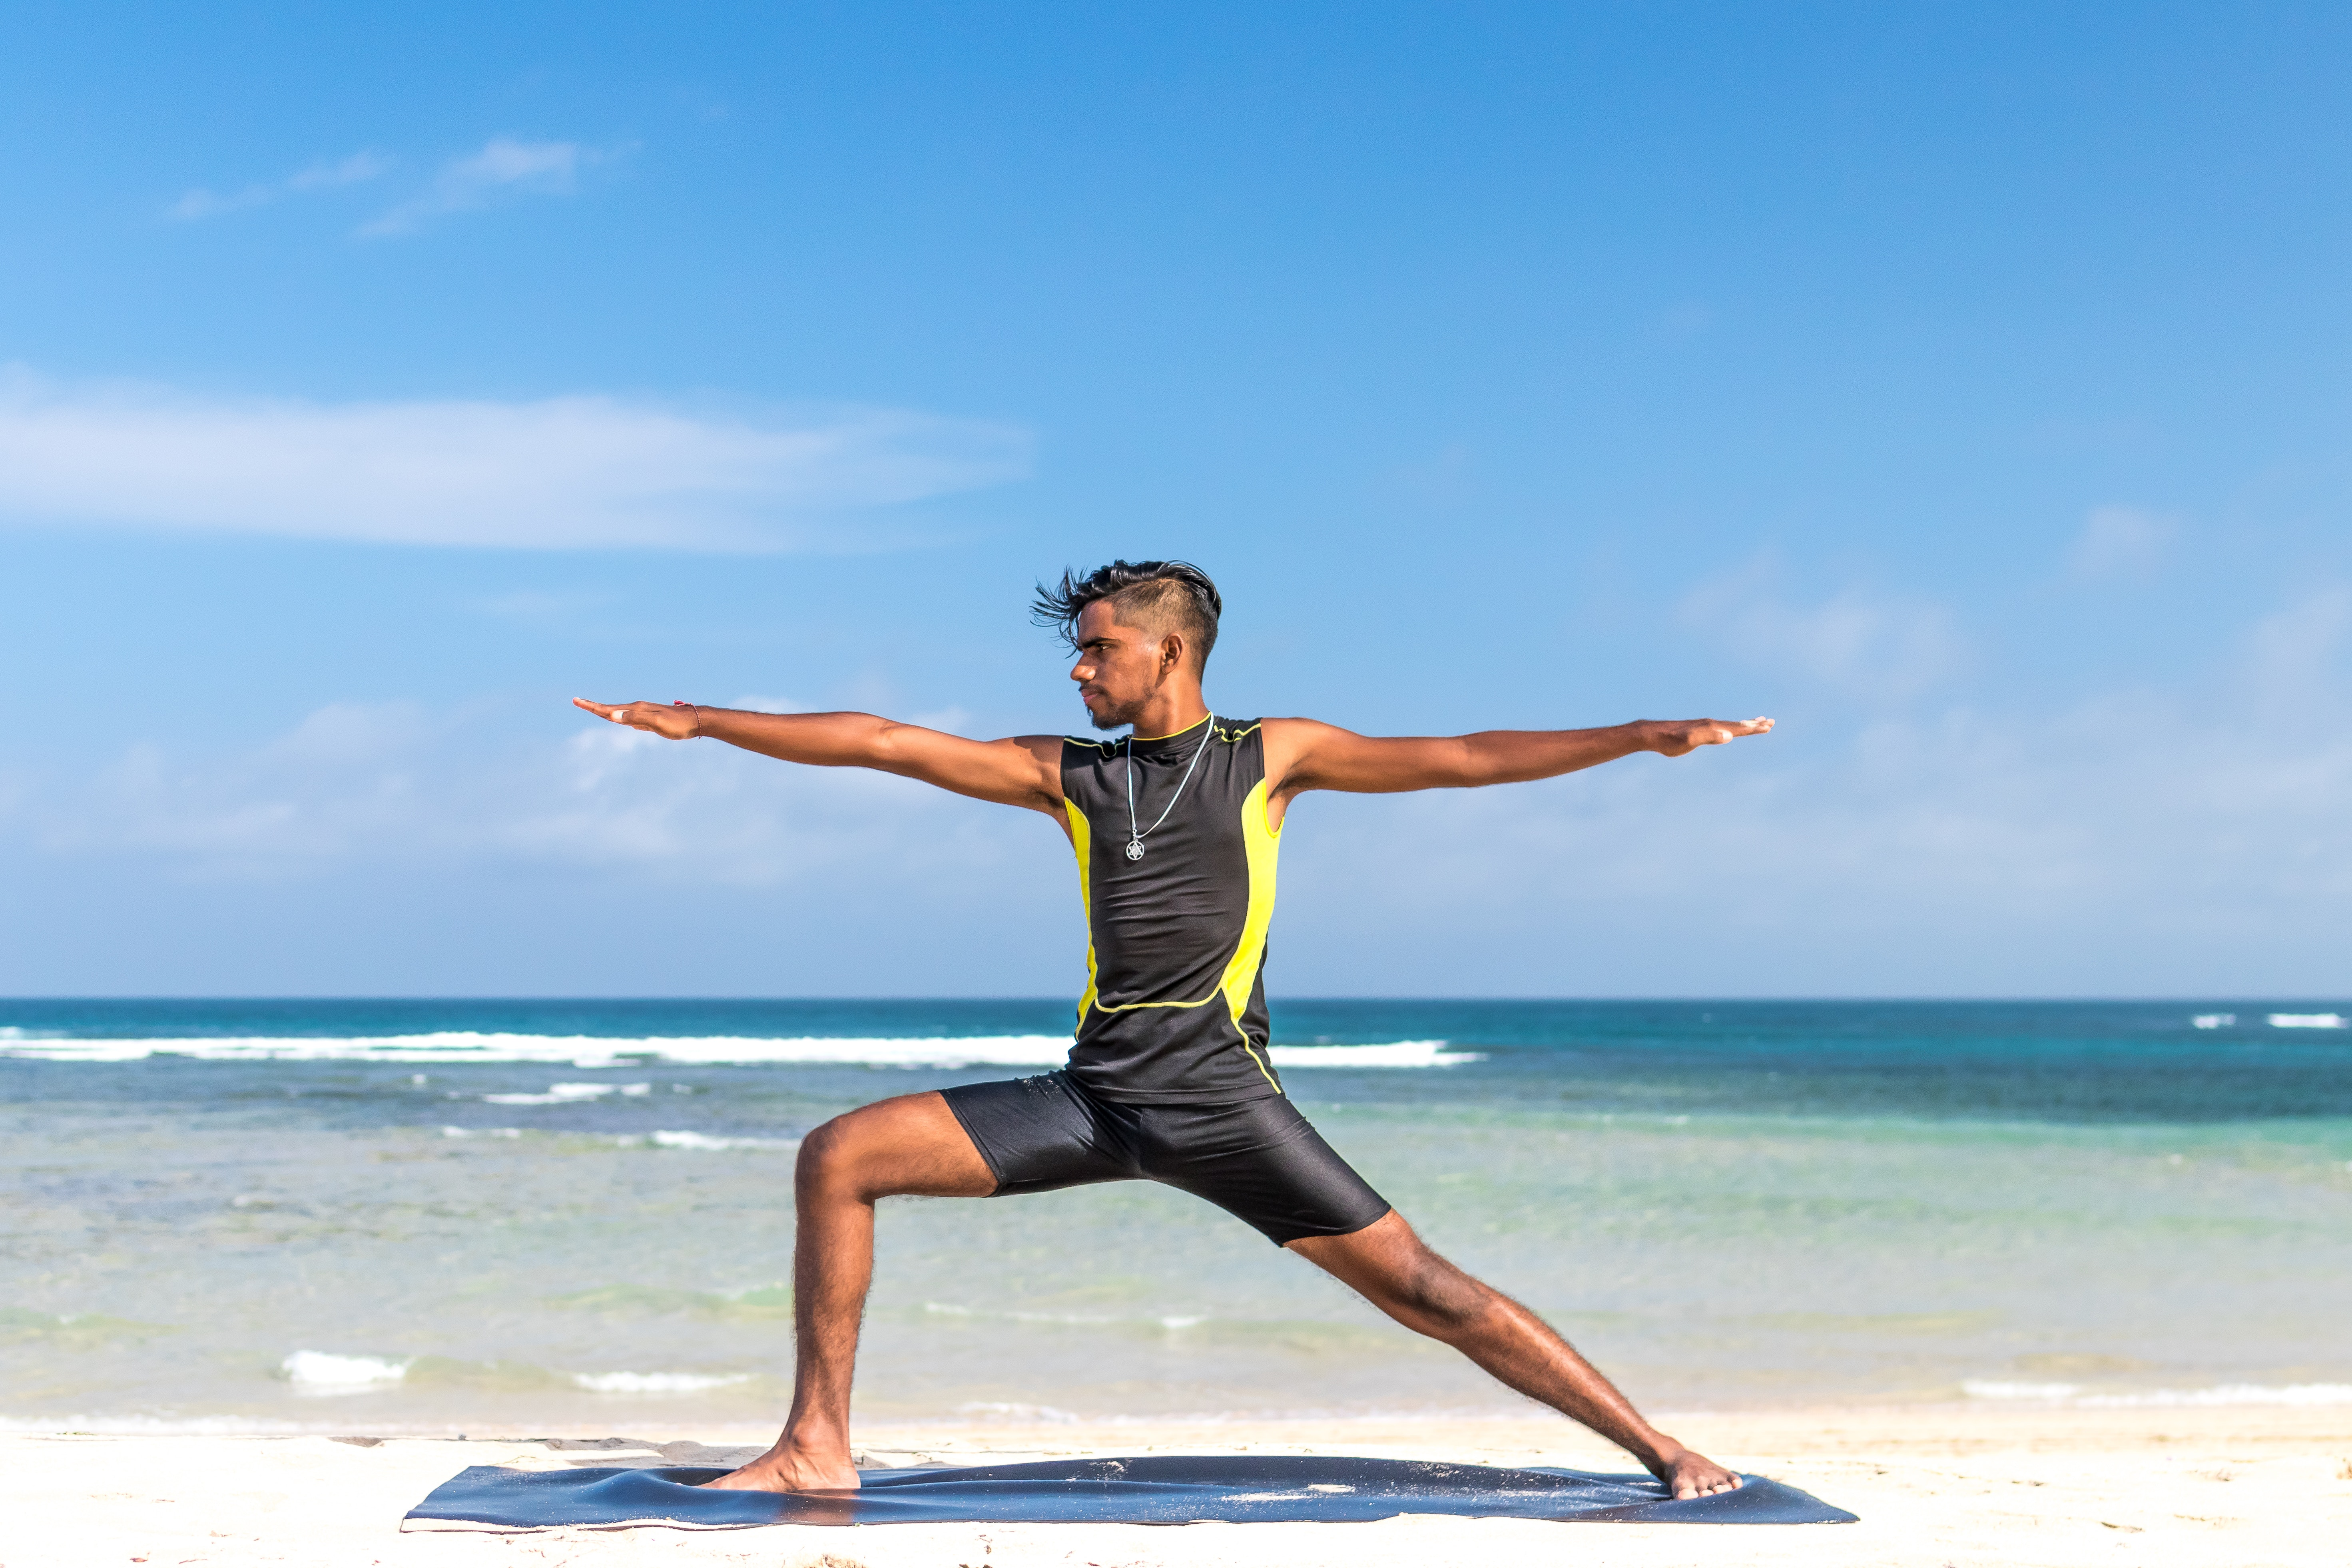 Man in sleeveless wet suit doing some aerobics at the beach photo